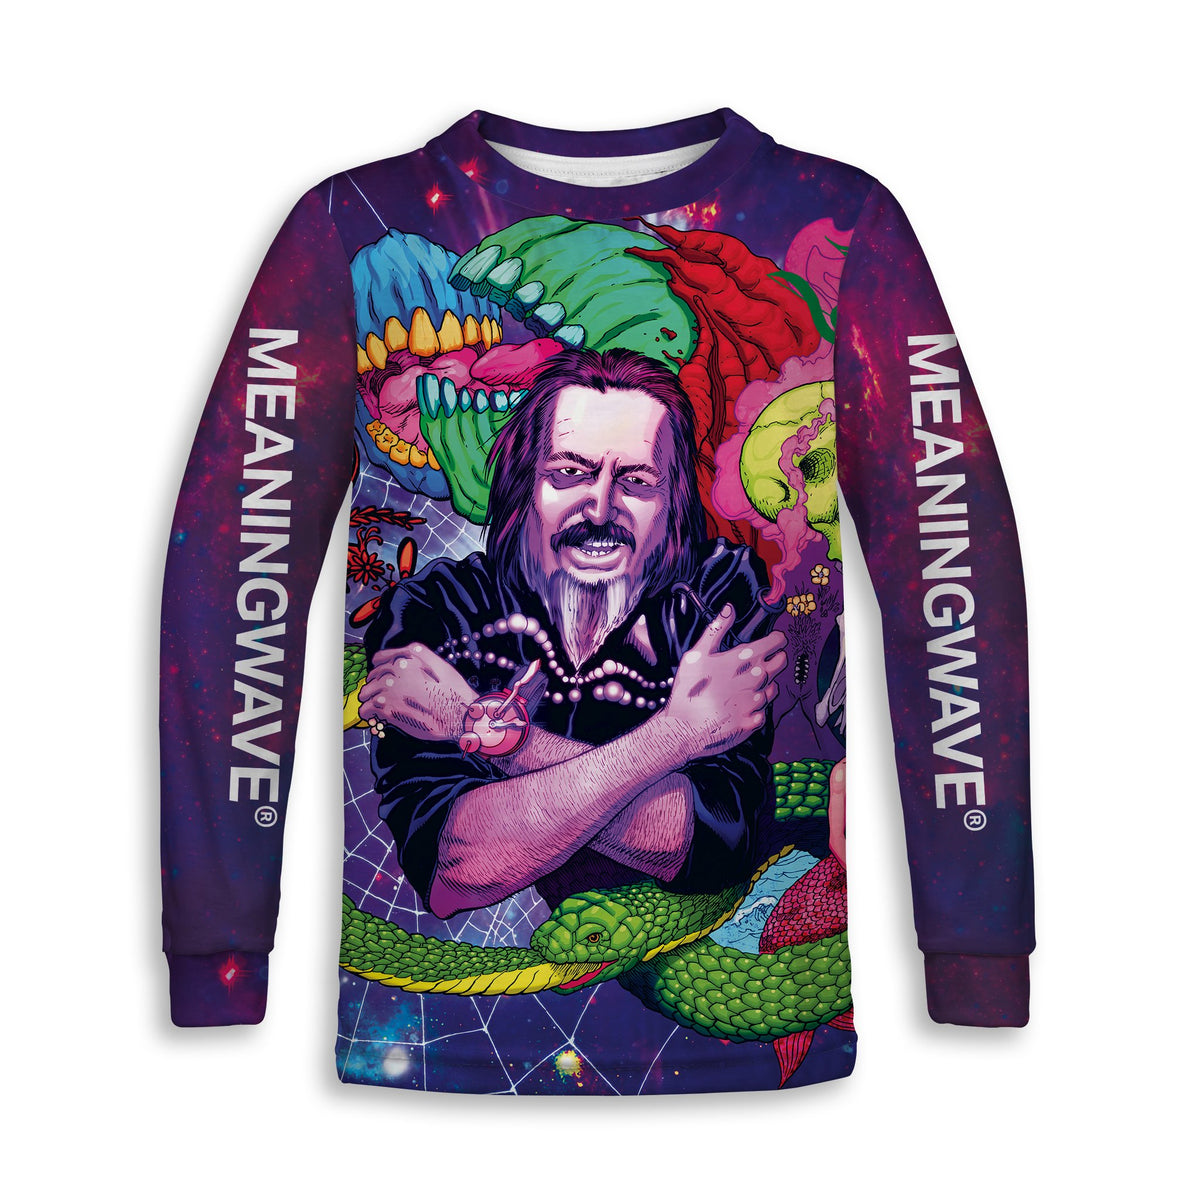 ALAN WATTS - WATTSWAVE VI Childrens Sweatshirt | Fabrifaction.com